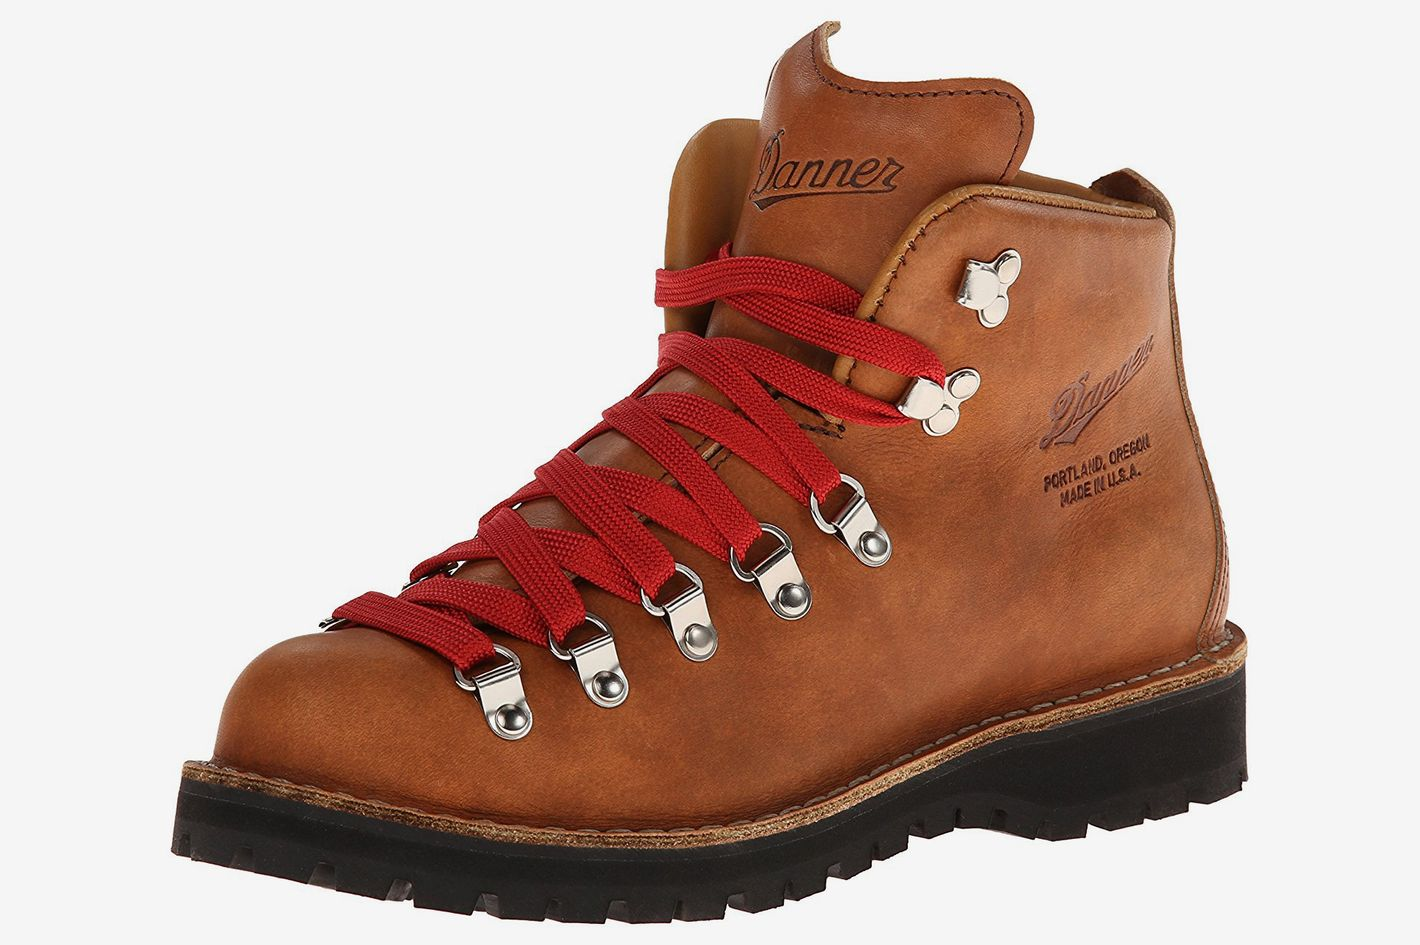 danner Best women's hiking boots for long backpacking trips